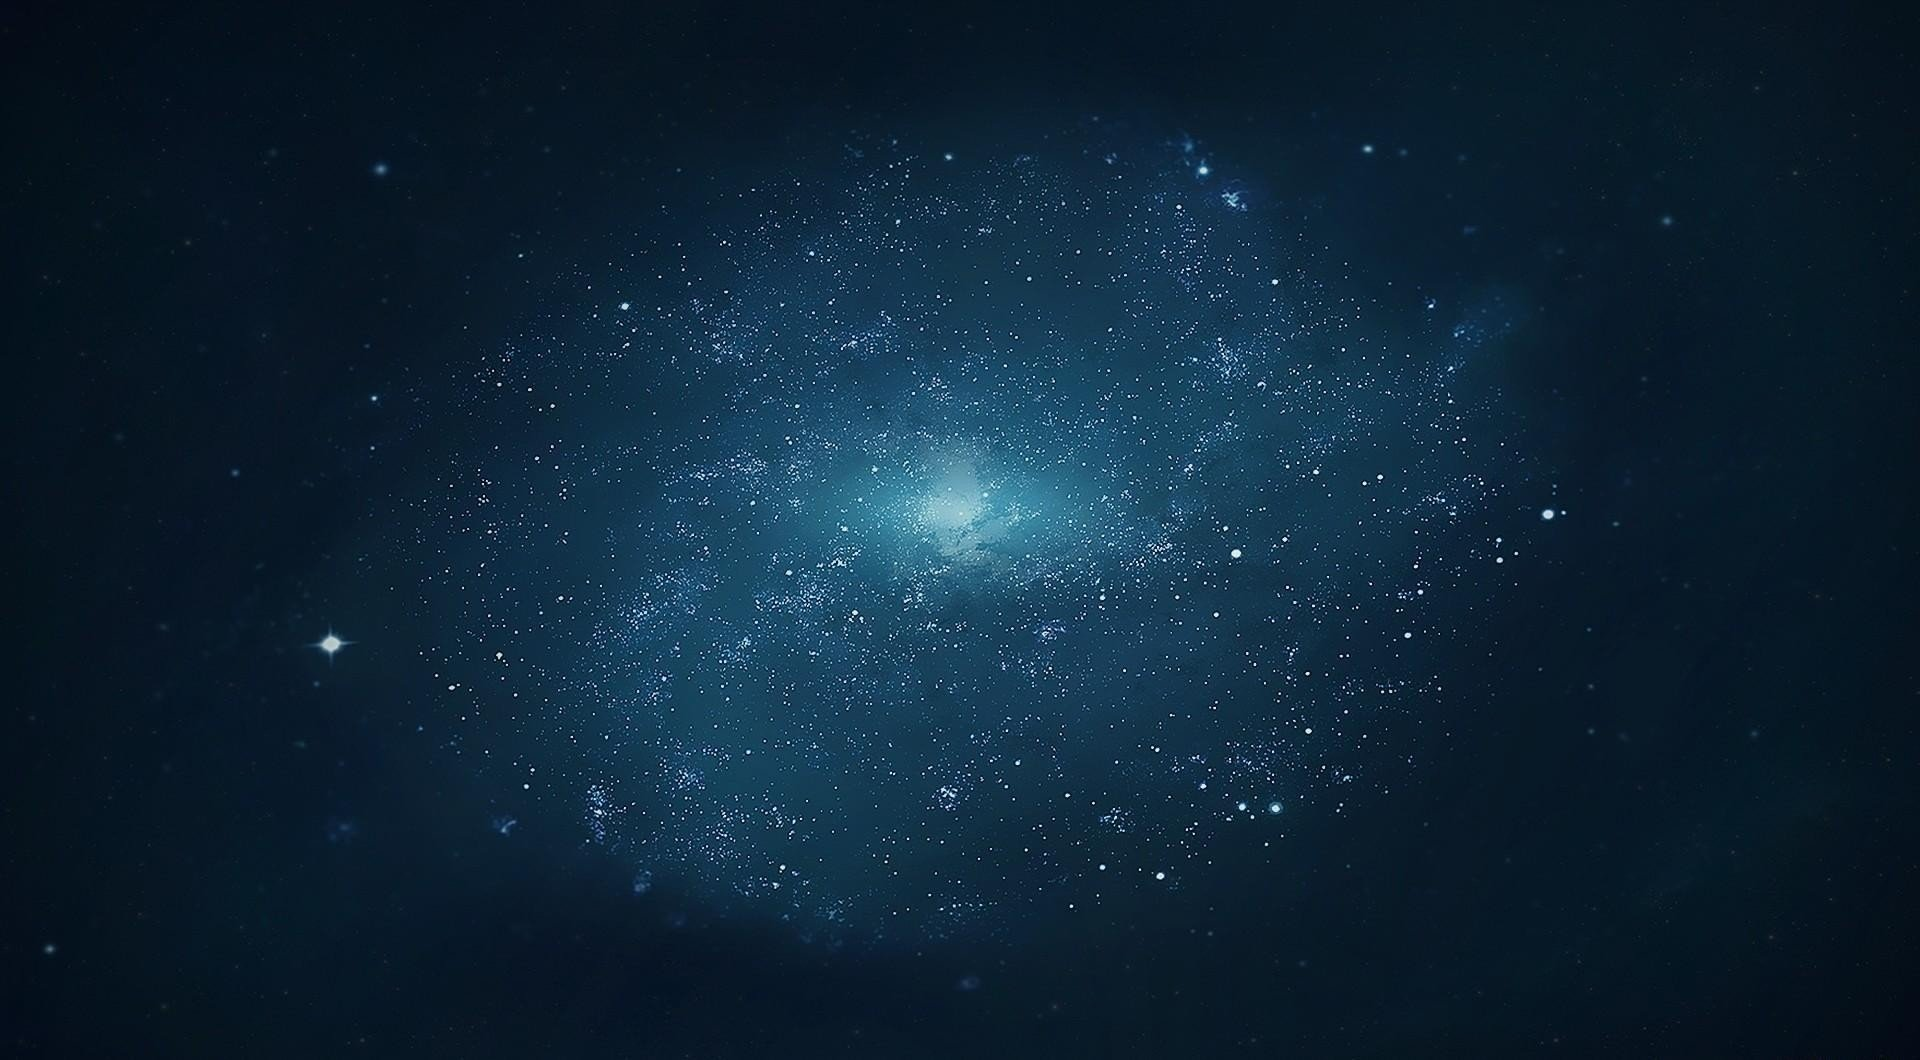 Wallpaper round galaxy in deep space desktop background 1920x1060